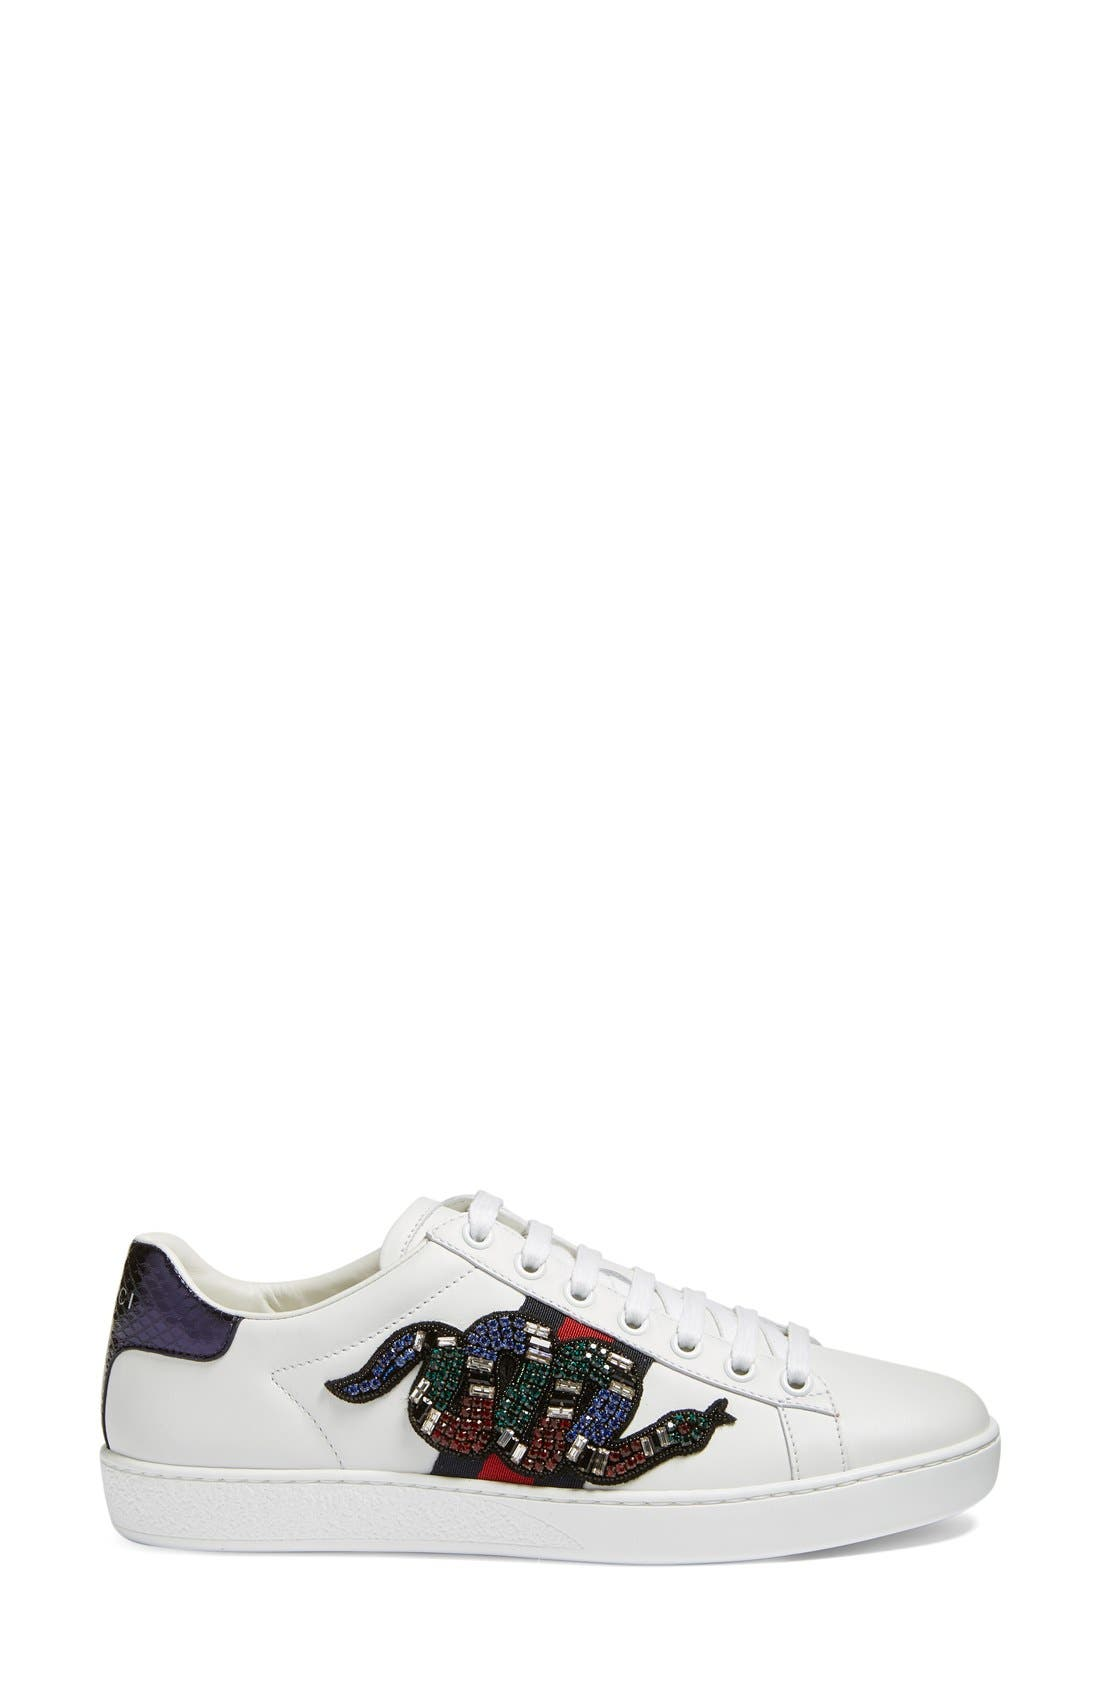 Alternate Image 4  - Gucci New Age Snake Embellished Sneaker (Women)